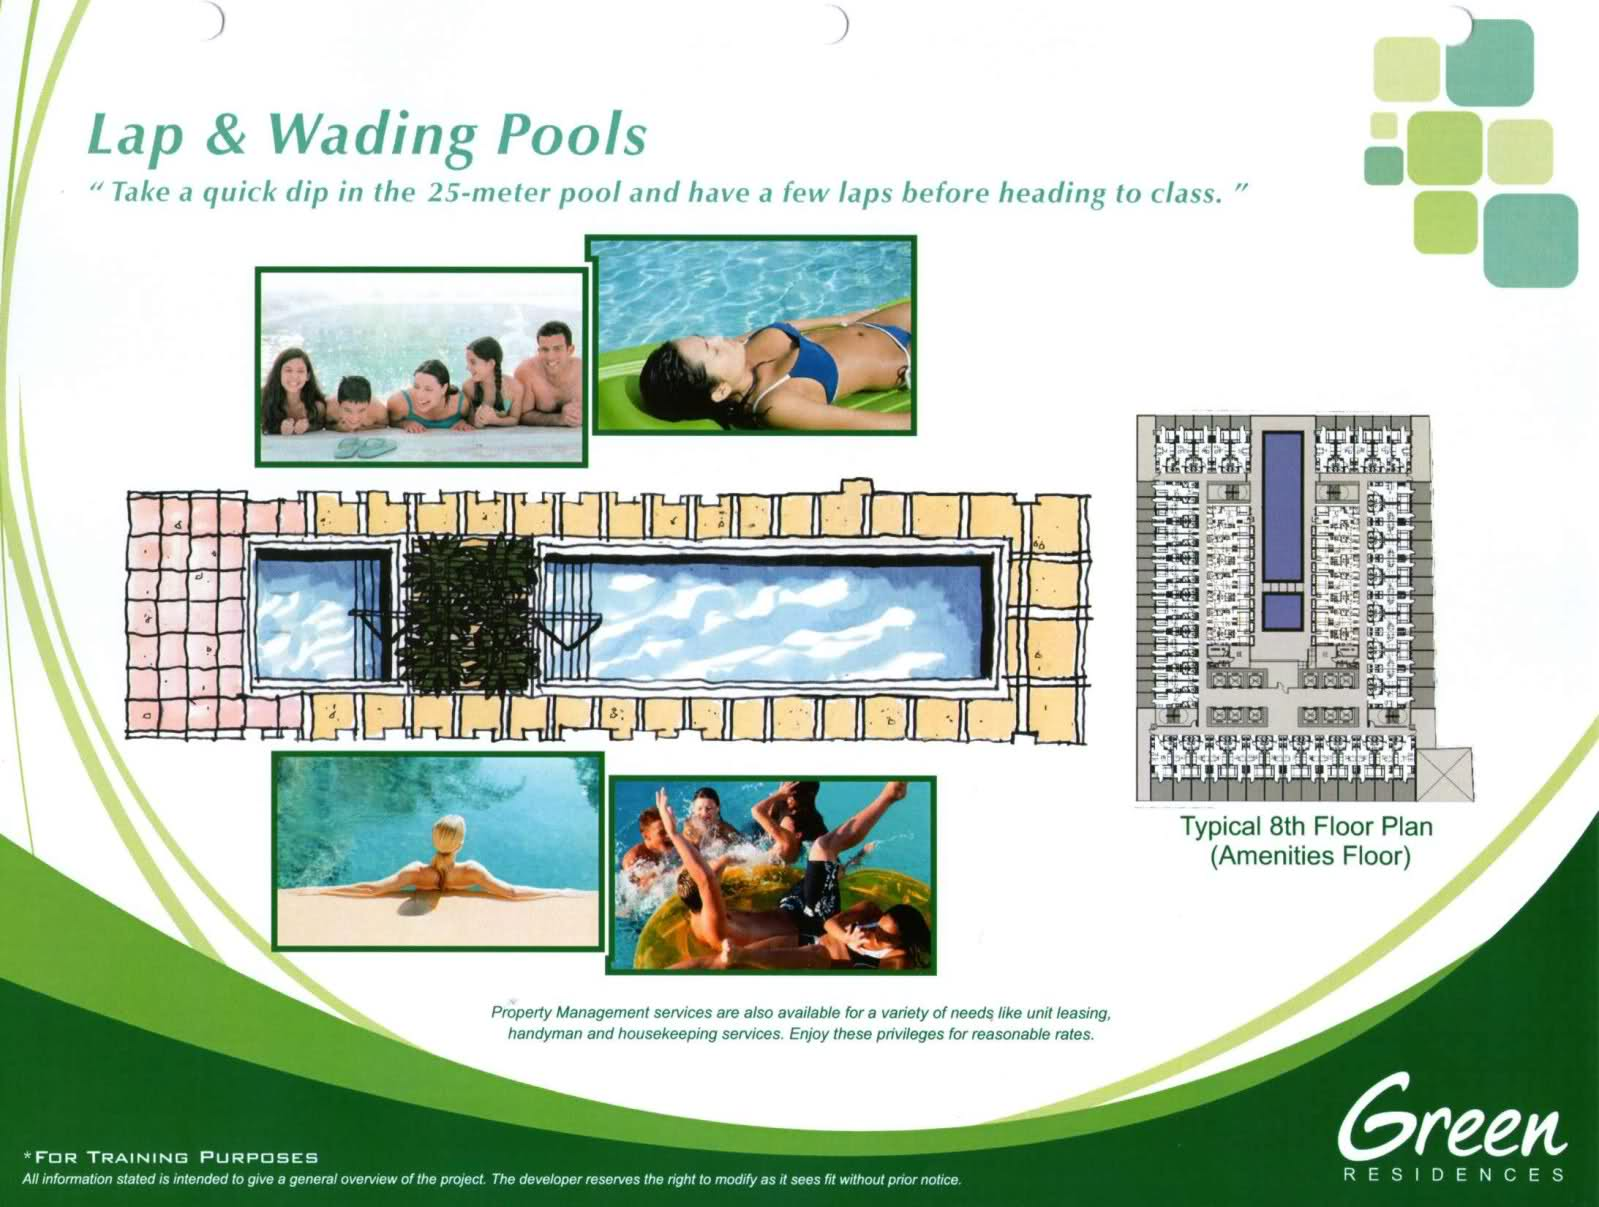 Green-Pool Amenity.jpg